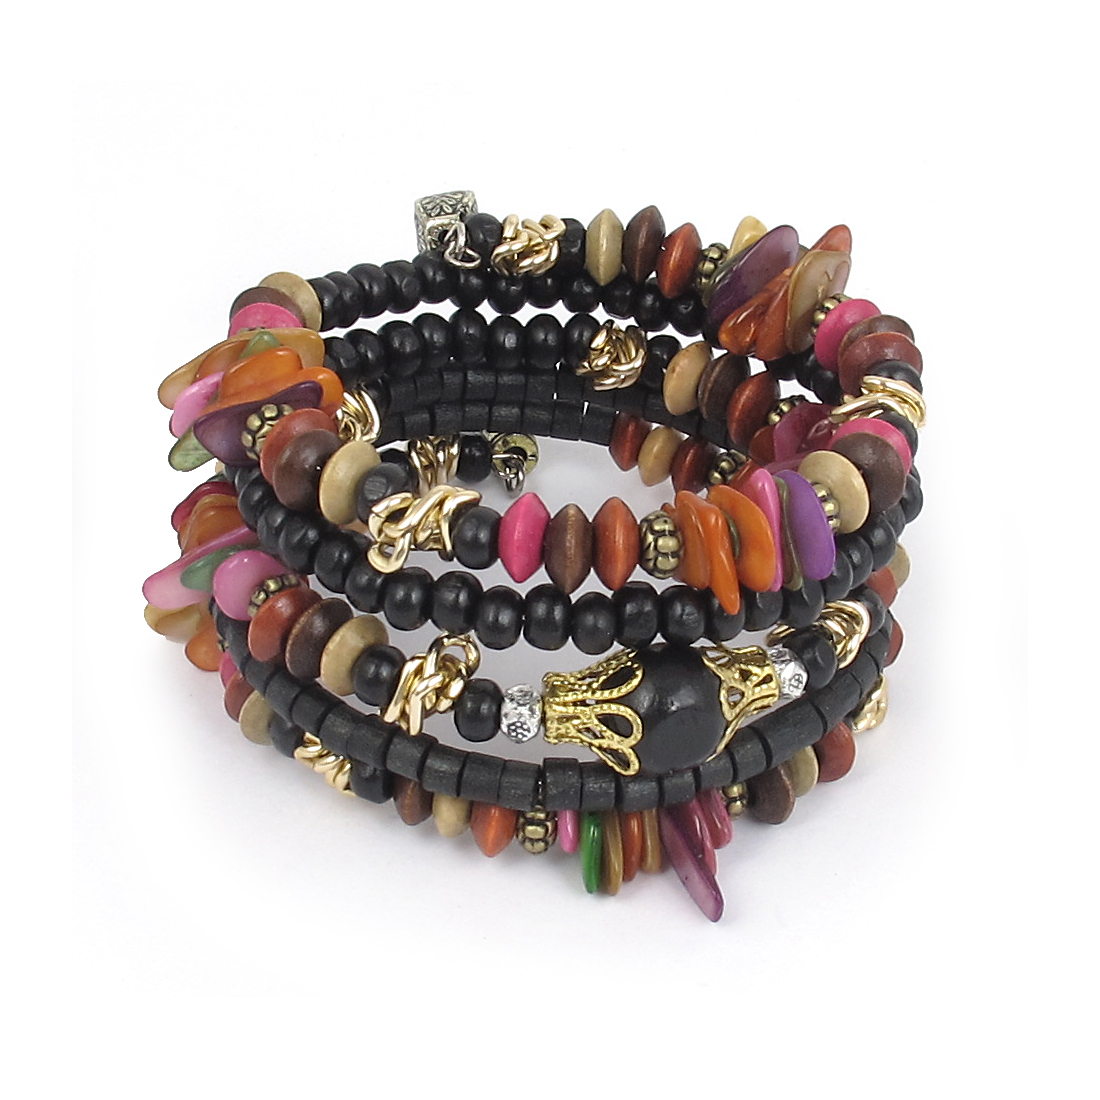 Lady National Fashion Manmade Round Cylinder Wooden Beads Multi-layer Wrist Bangle Bracelet Black